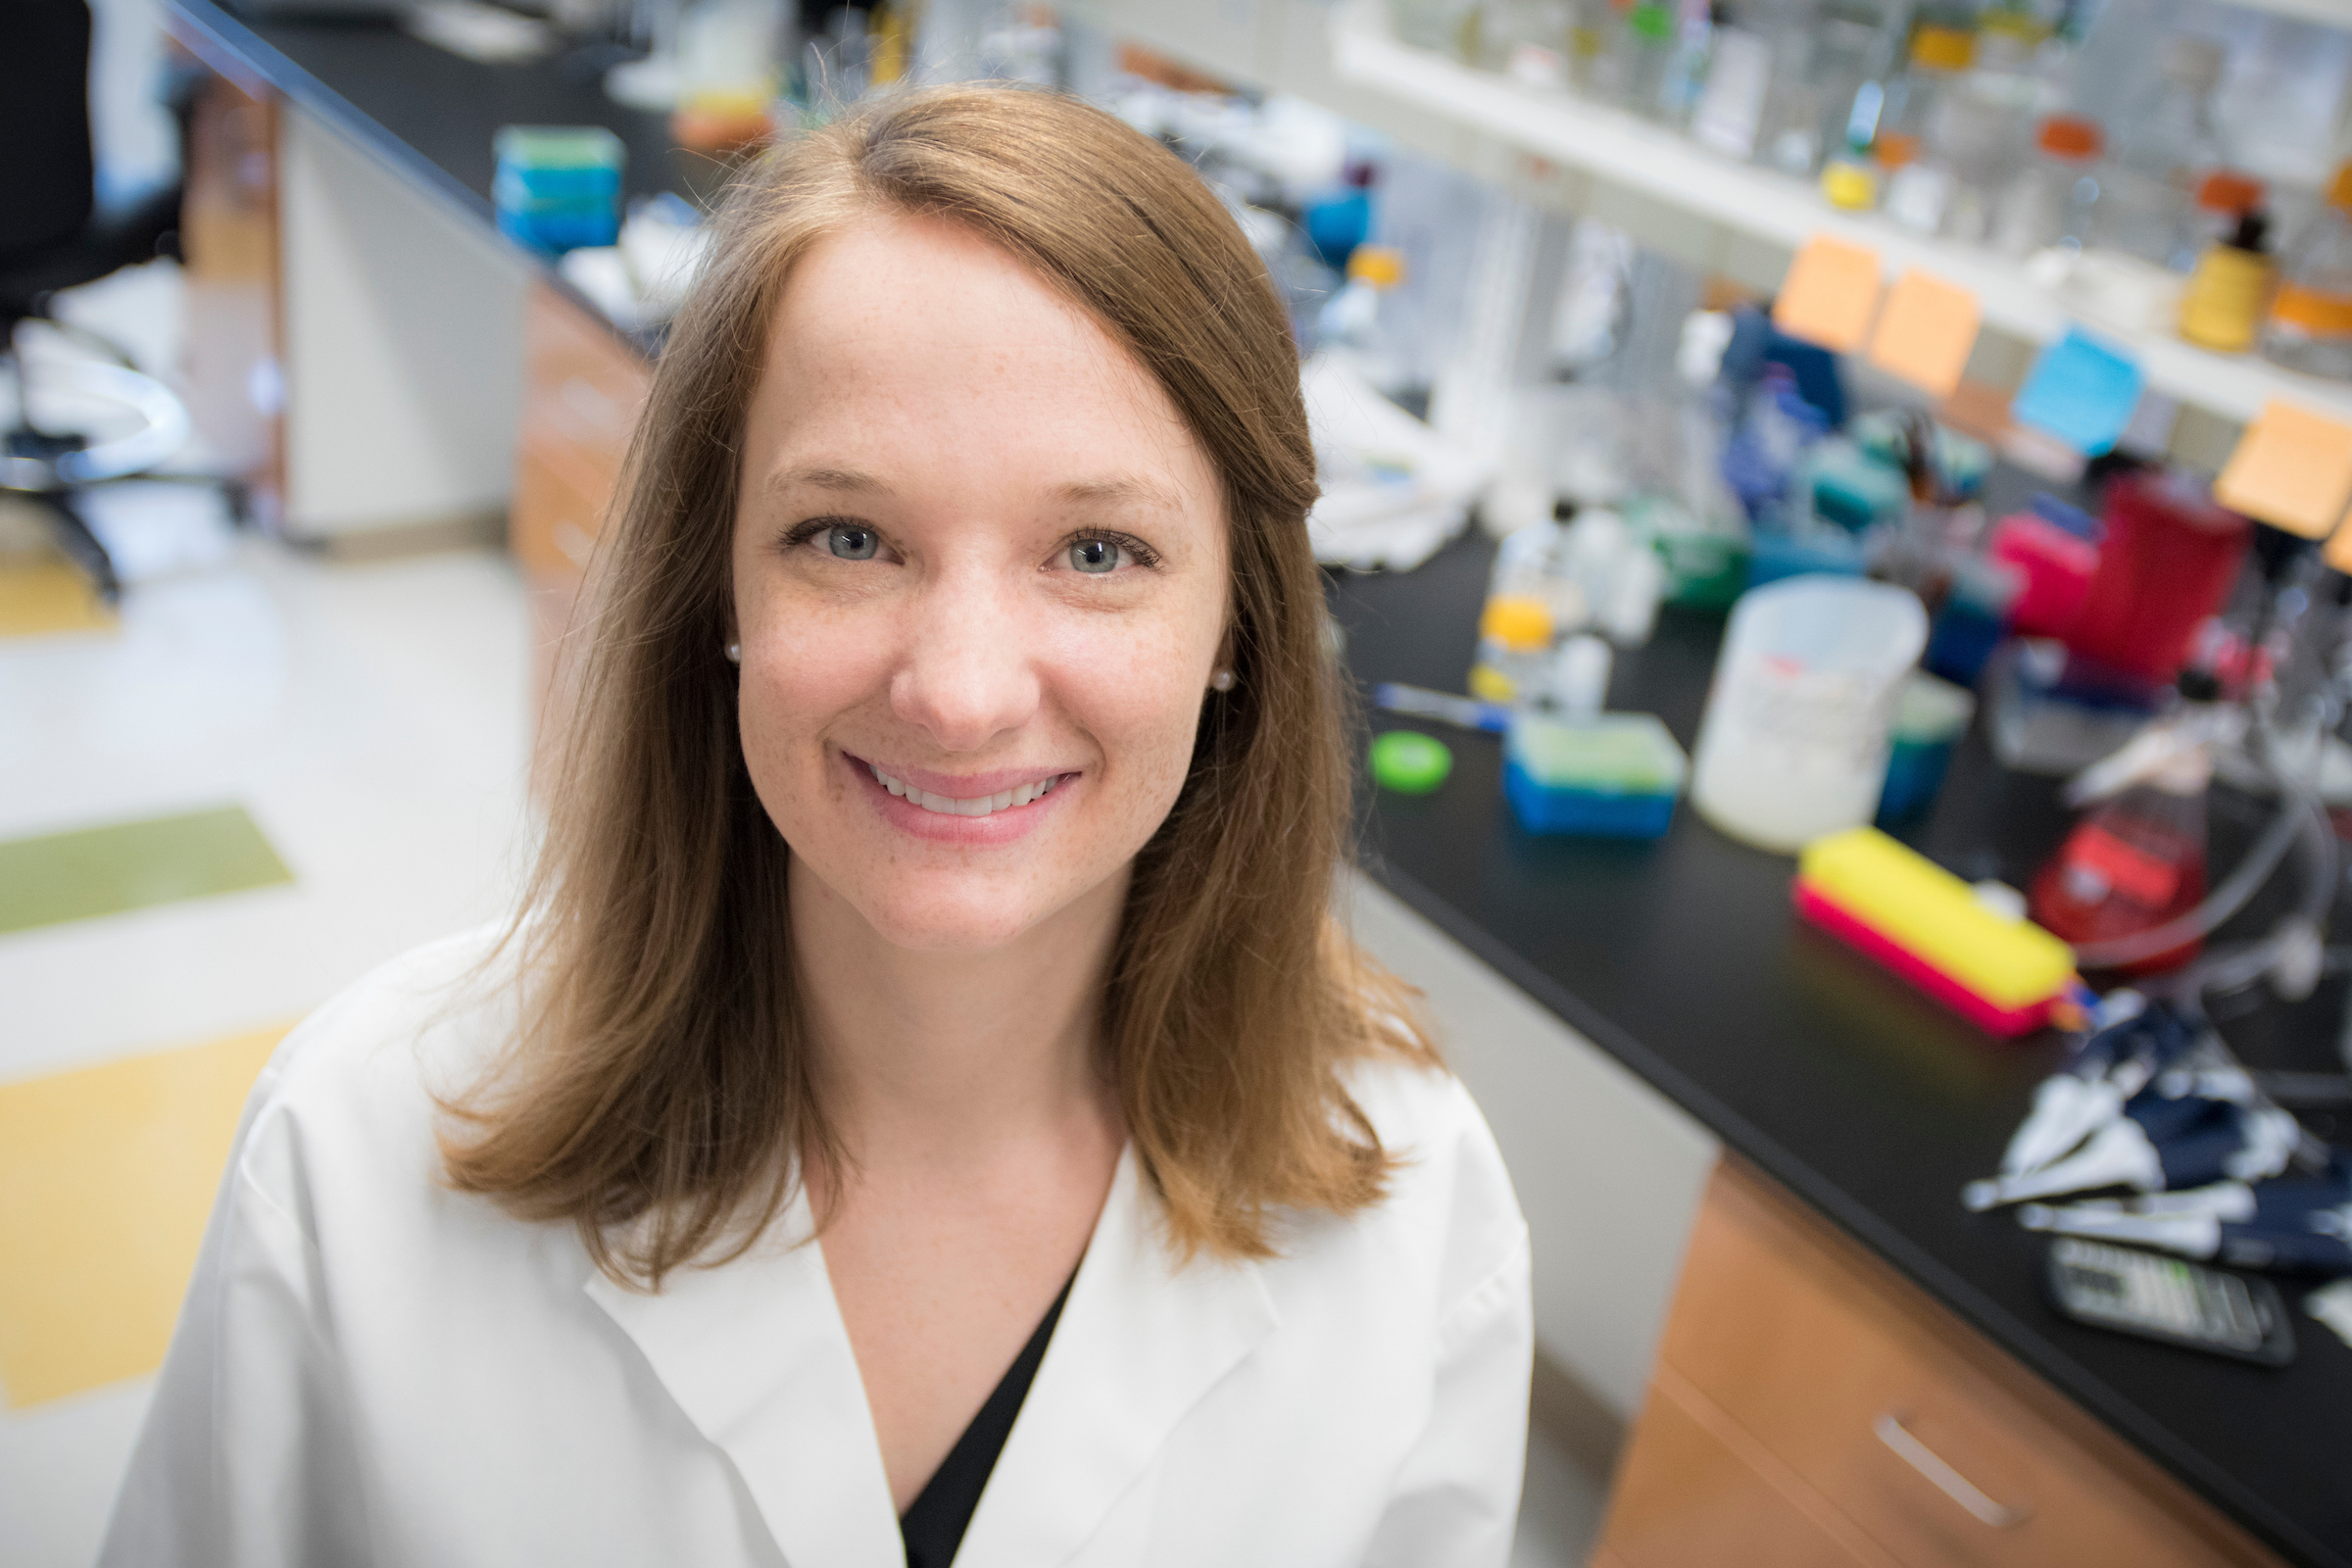 Laura J. Blair, PhD: Assistant Professor, Department of Molecular Medicine, USF Health Byrd Institute, University of South Florida, Tampa, FL.